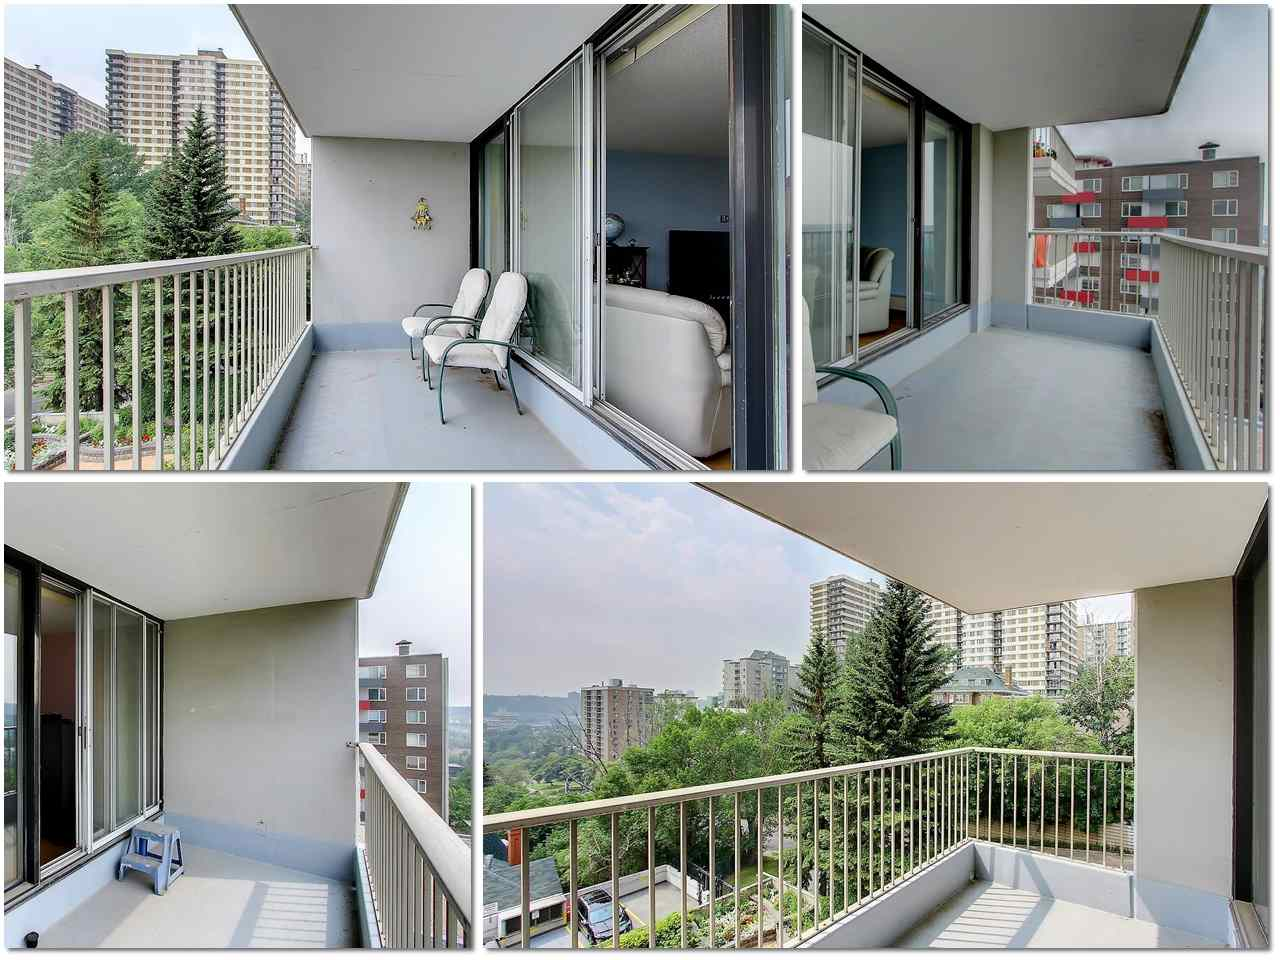 Photo 19: 402 9923 103 Street in Edmonton: Zone 12 Condo for sale : MLS® # E4074761